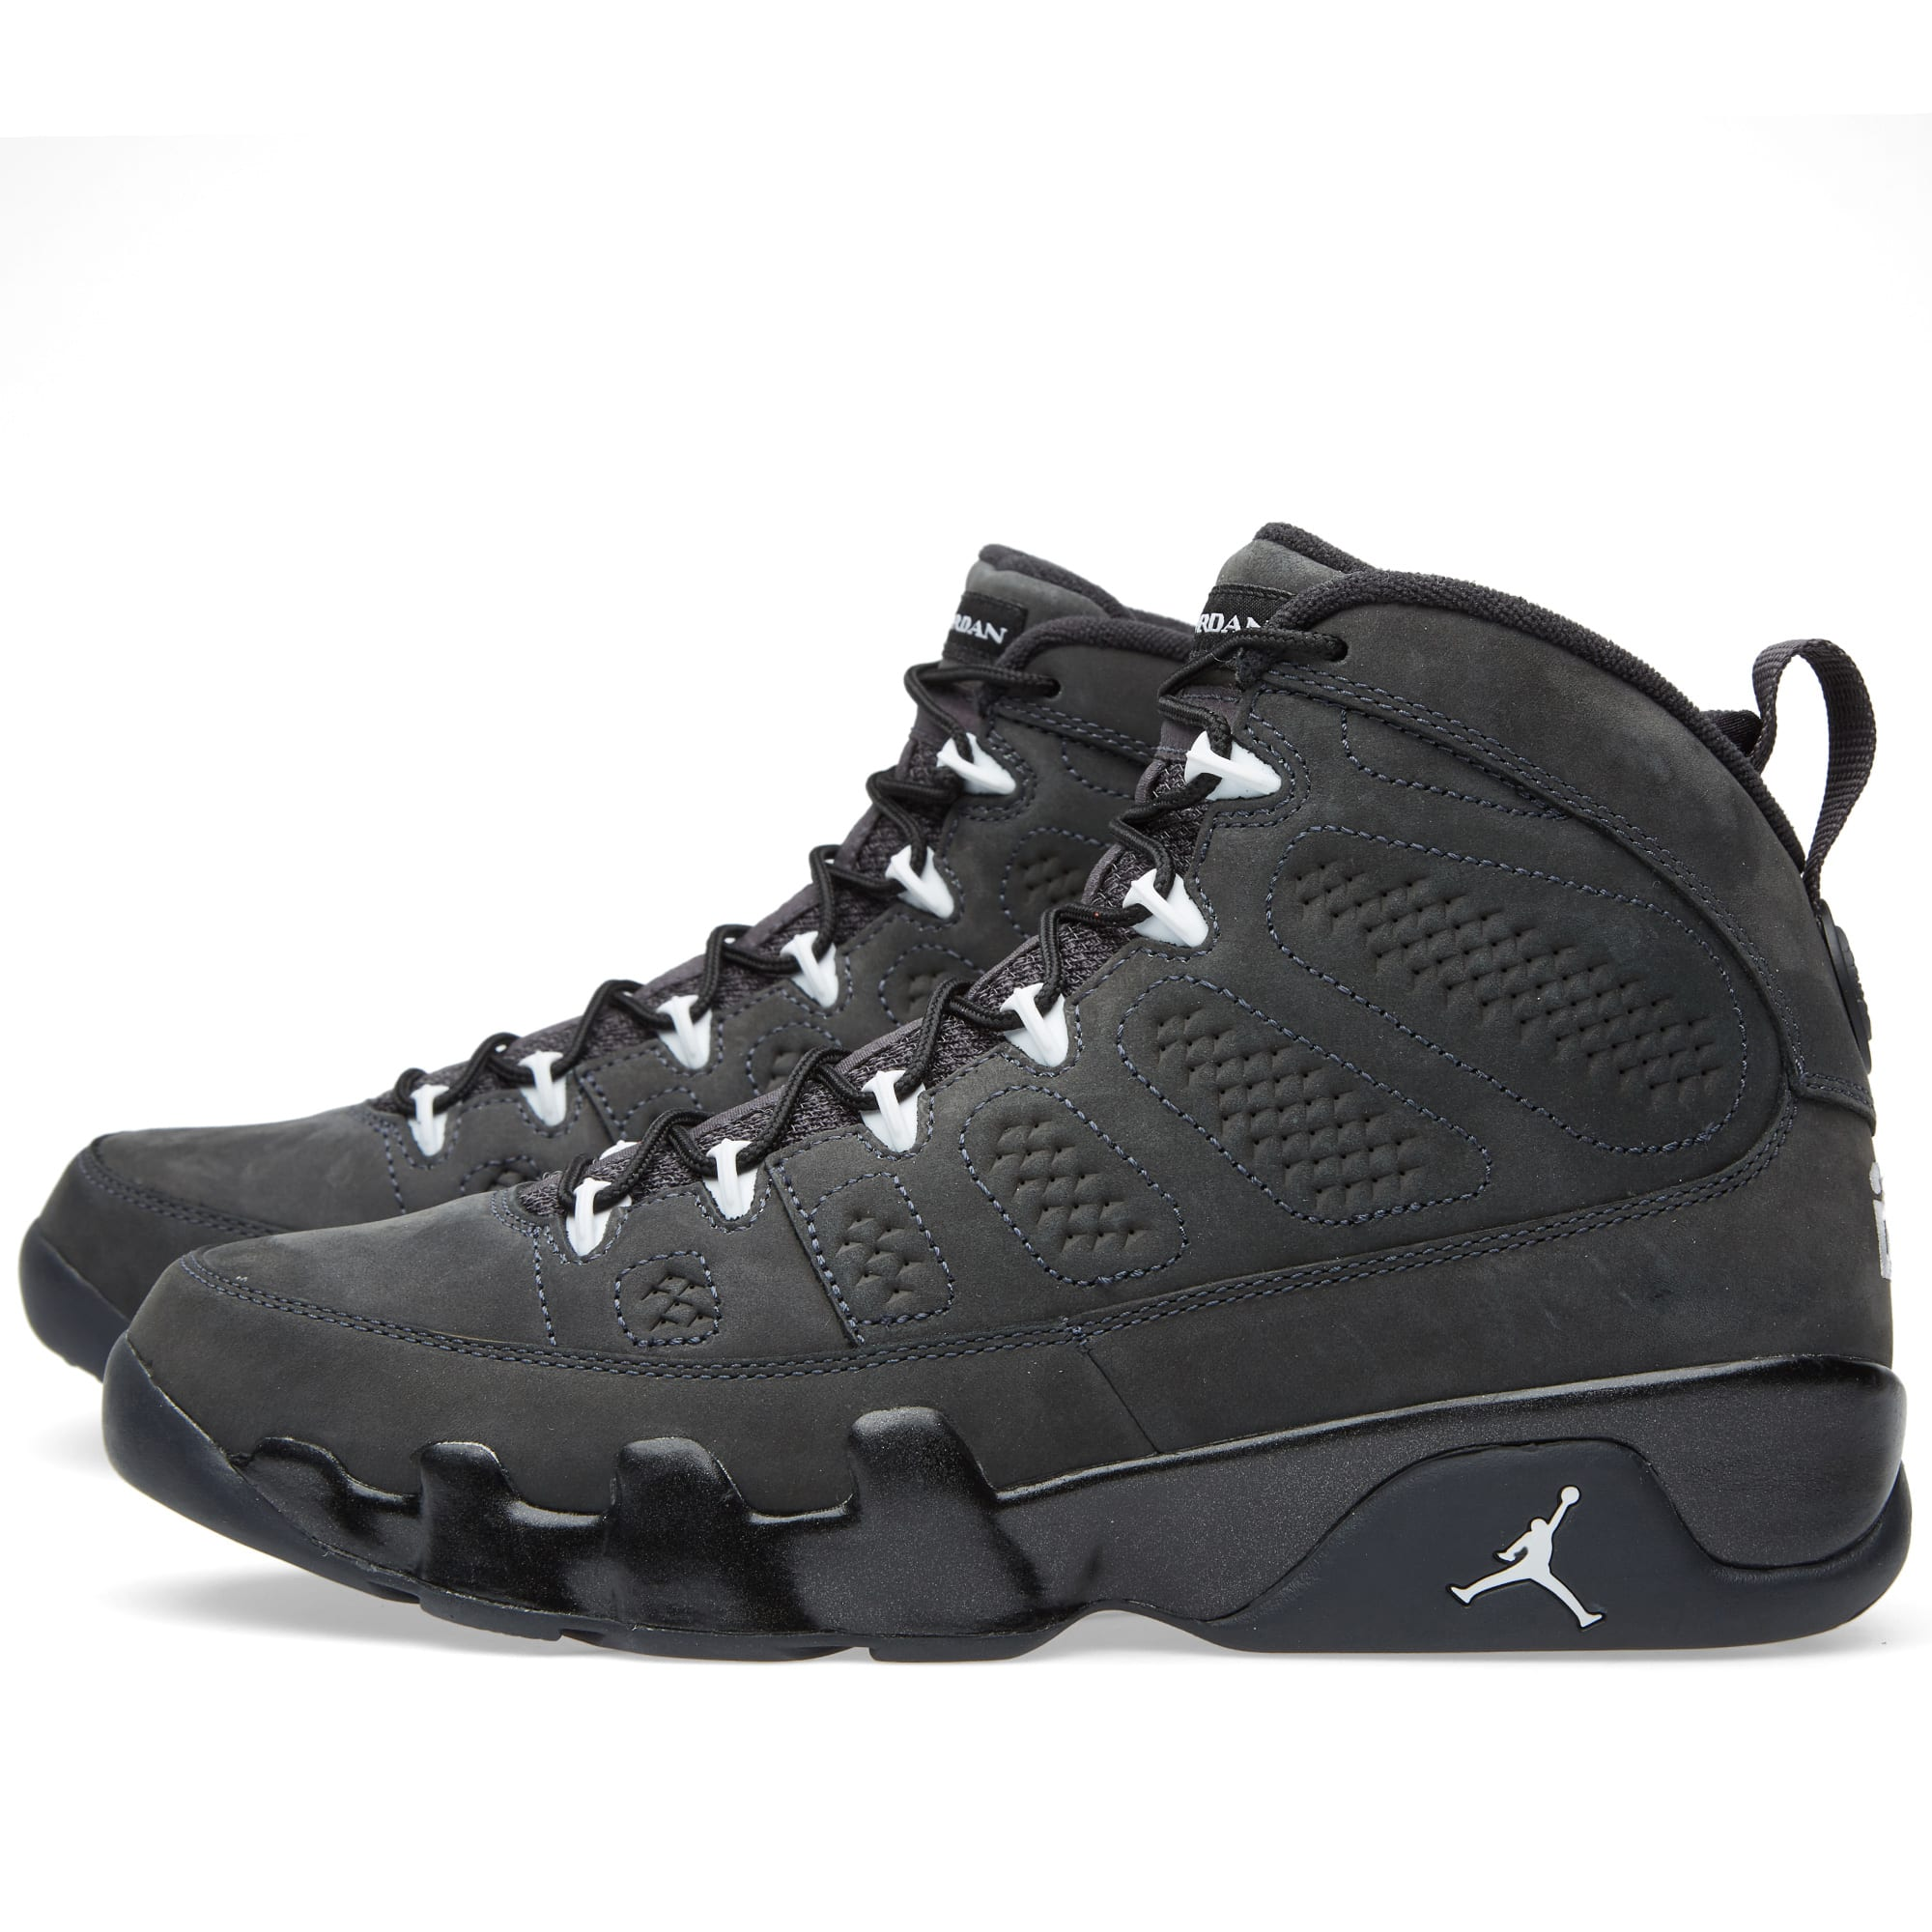 finest selection 7cdfa 345e3 Nike Air Jordan 9 Retro Anthracite, White   Black   END.